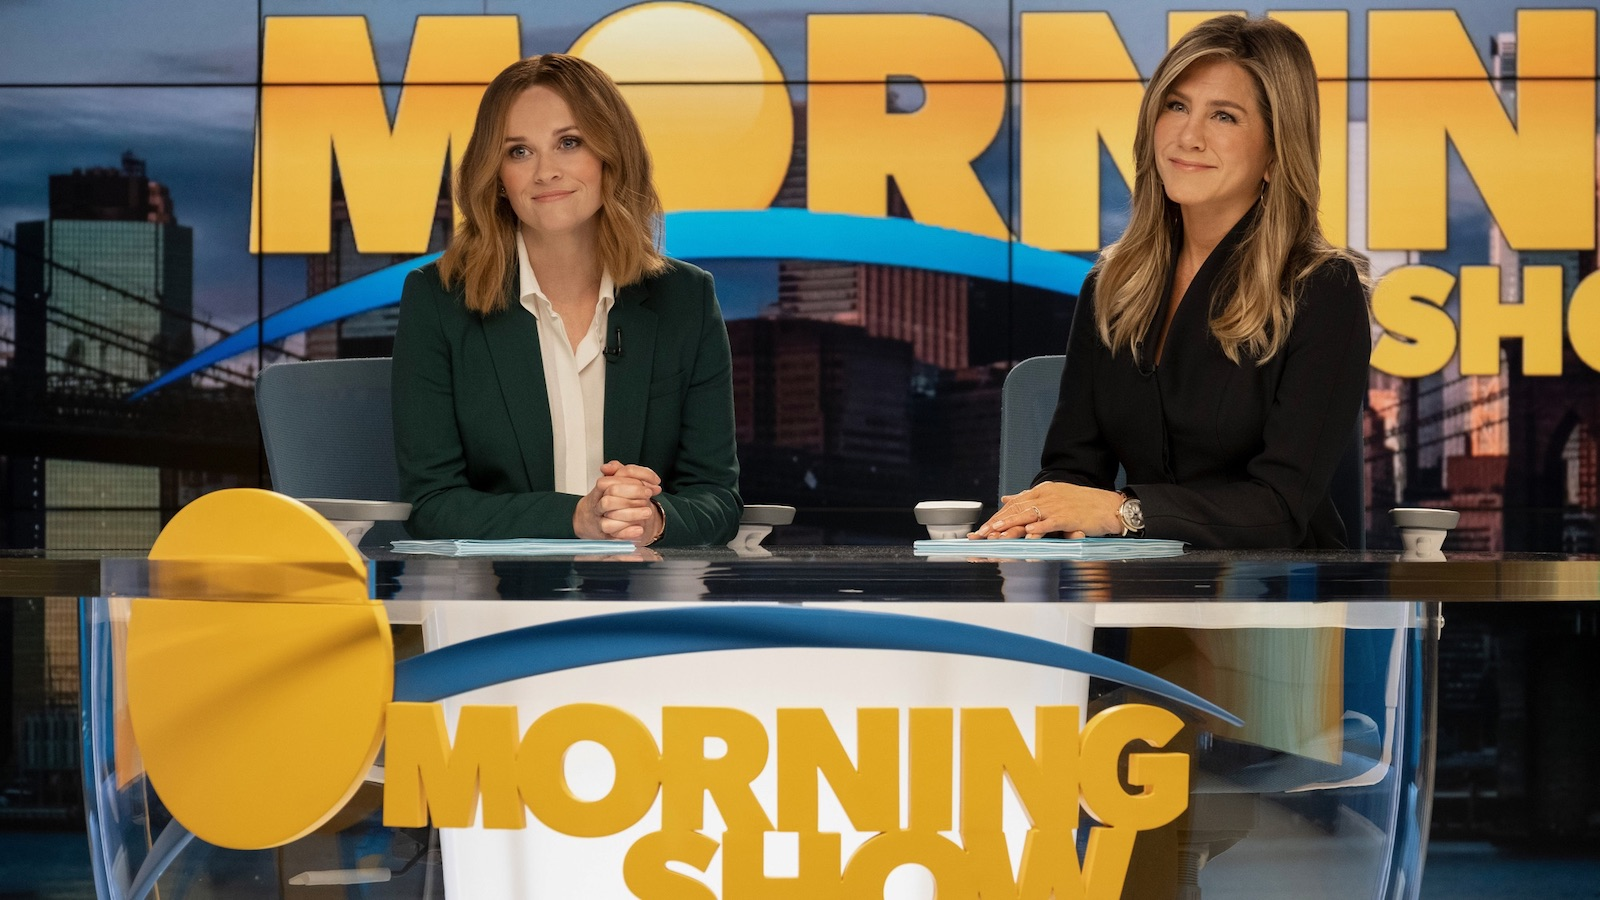 the morning show aniston witherspoon jpg?retina.'